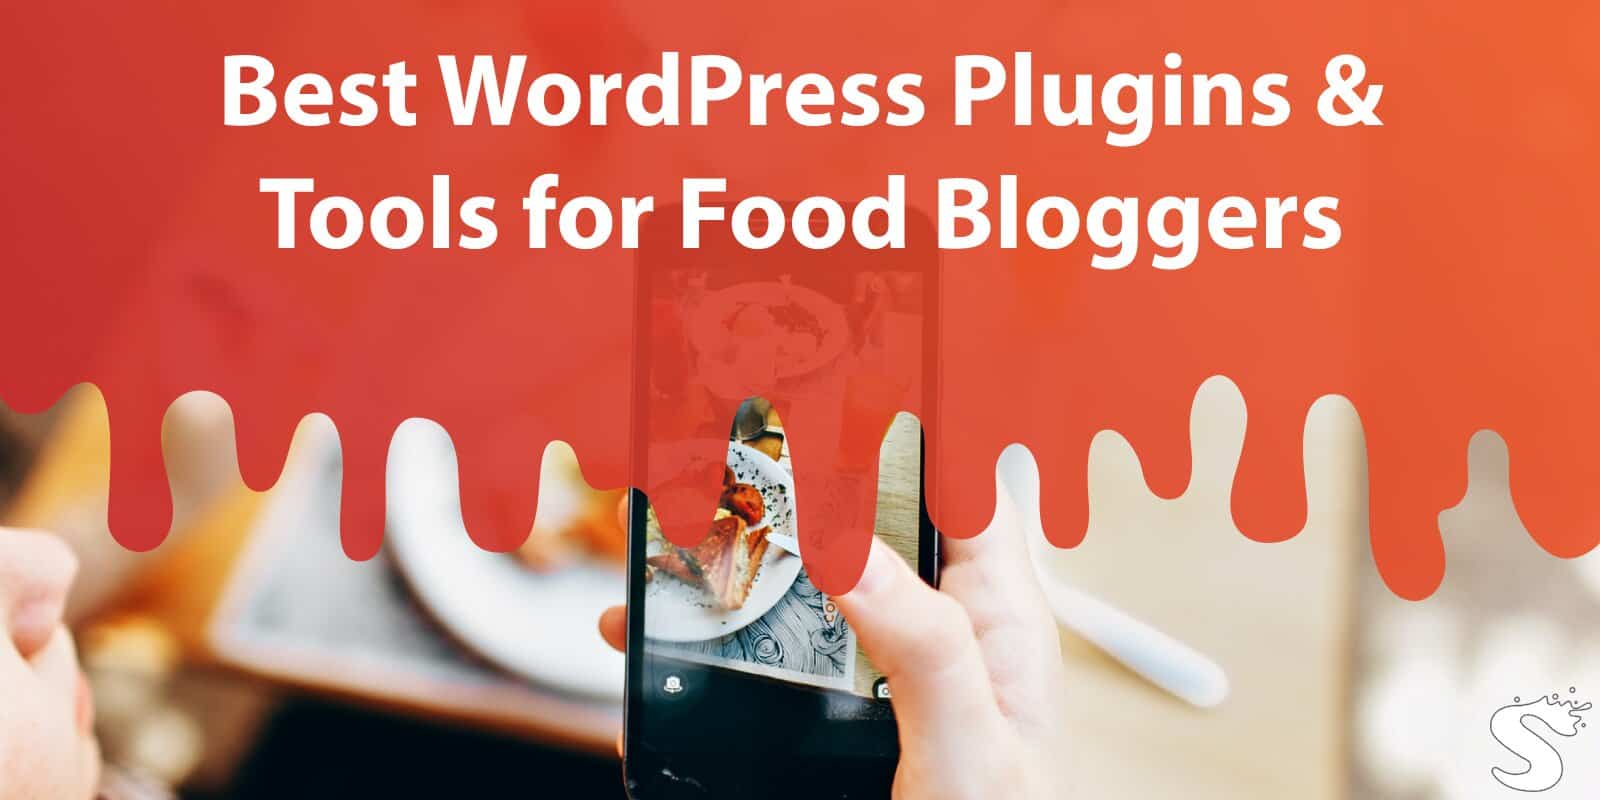 Best WordPress Plugins & Tools for Food Bloggers